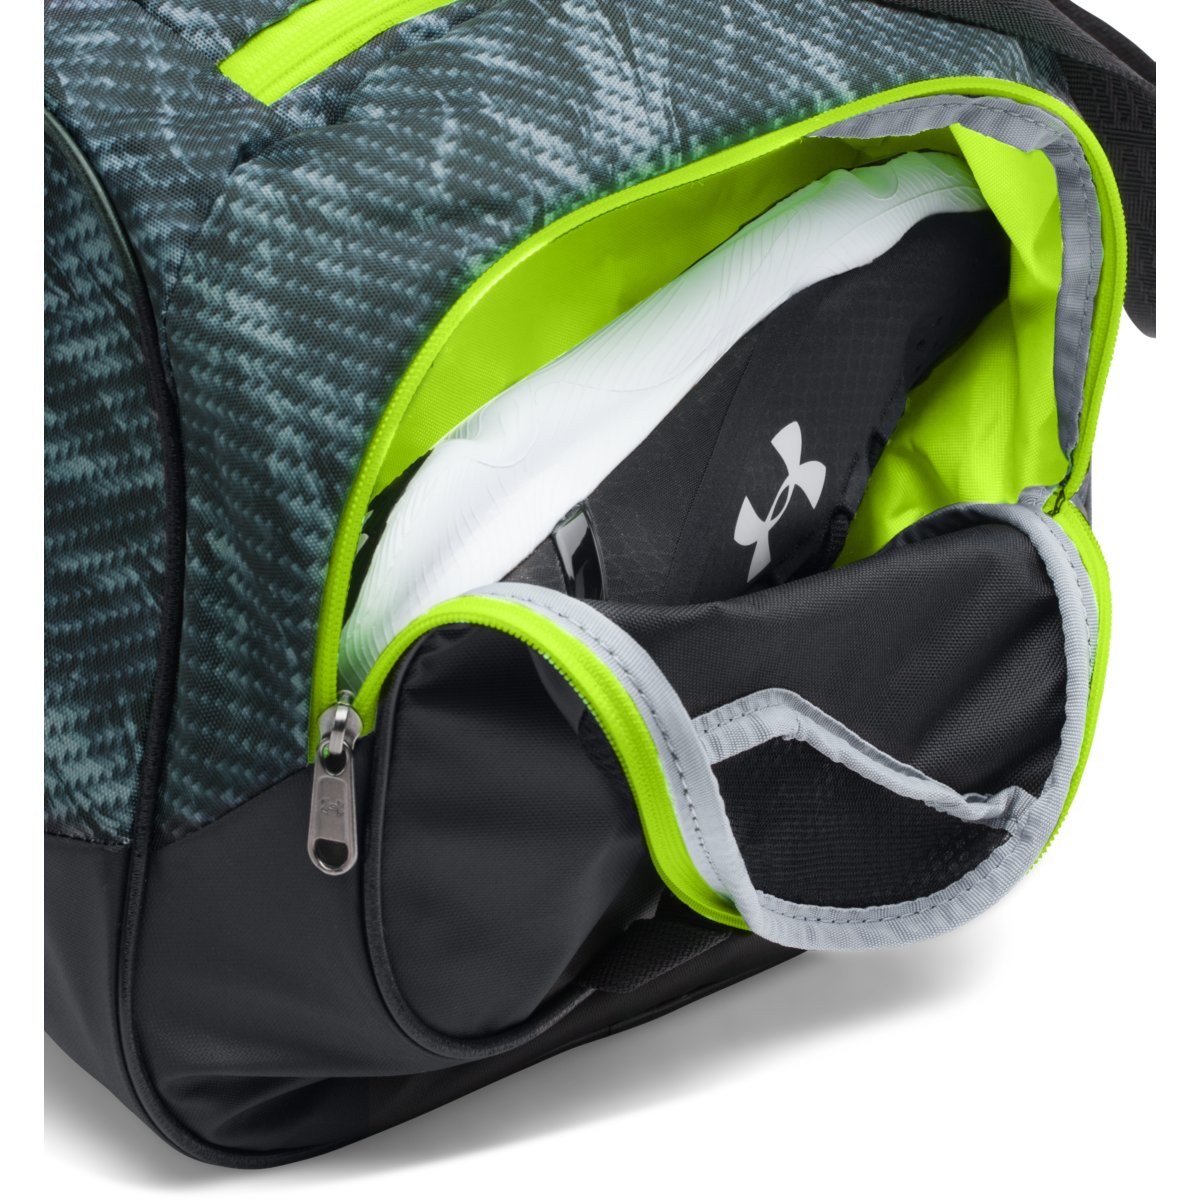 7c724433e1 Cheap under armour storm duffle bag small Buy Online >OFF55% Discounted